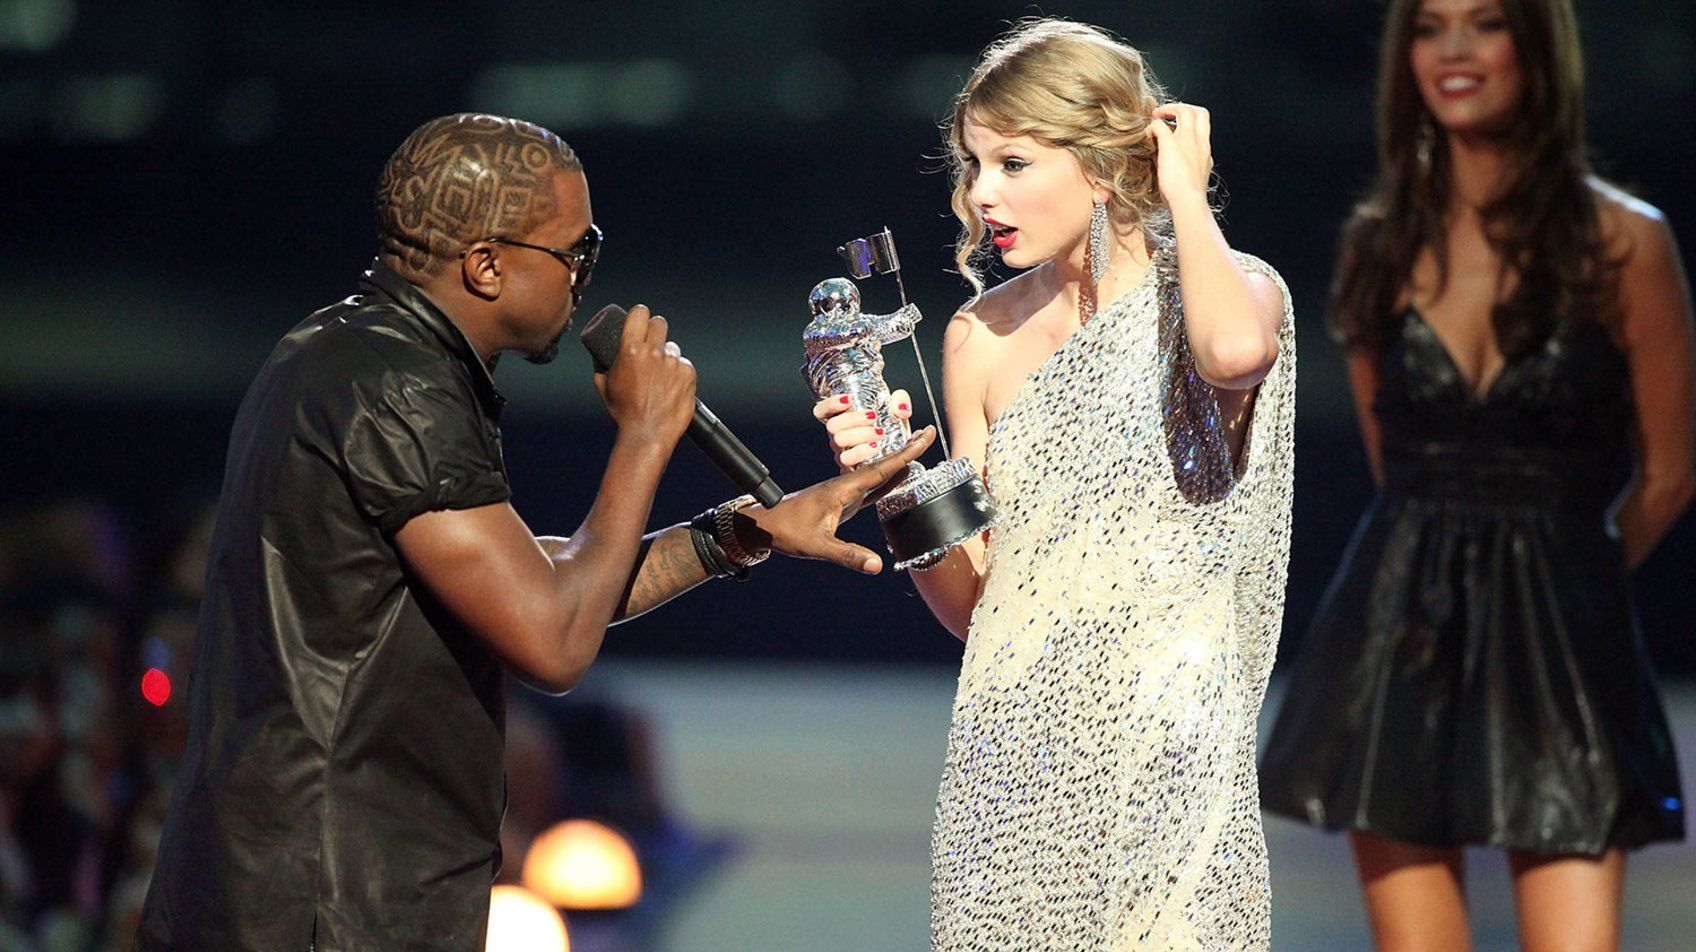 Just A Reminder That Taylor Swift Always Brings The Drama To The Mtv Vmas Taylor Swift Kanye West Taylor Swift Jokes Taylor Swift